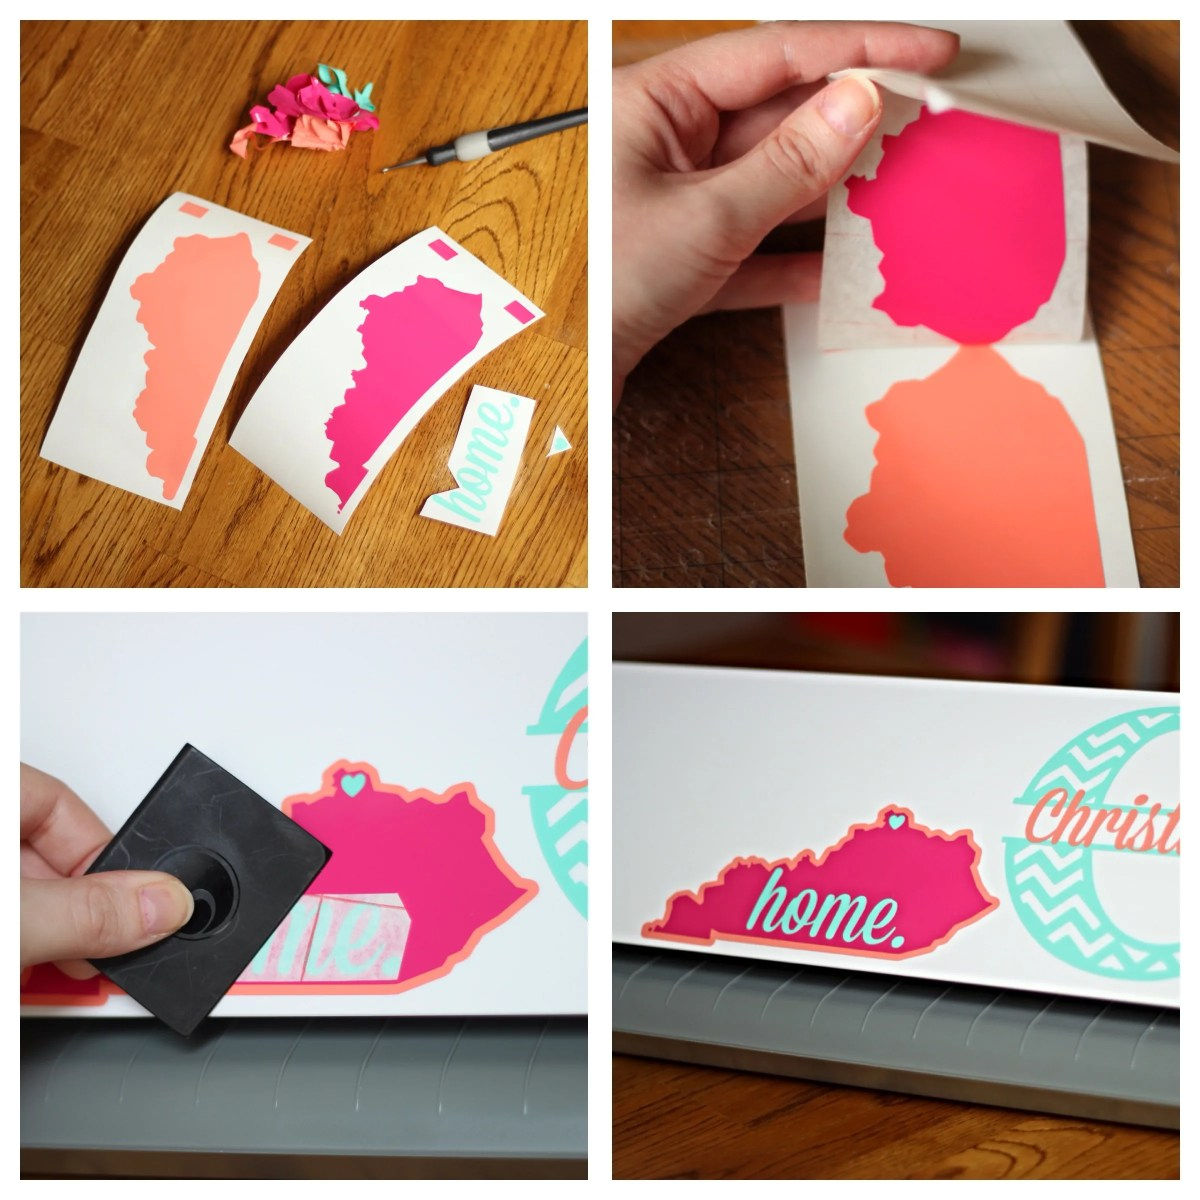 How To Layer Vinyl & Make a {Cute & Feminine} Home State Decal